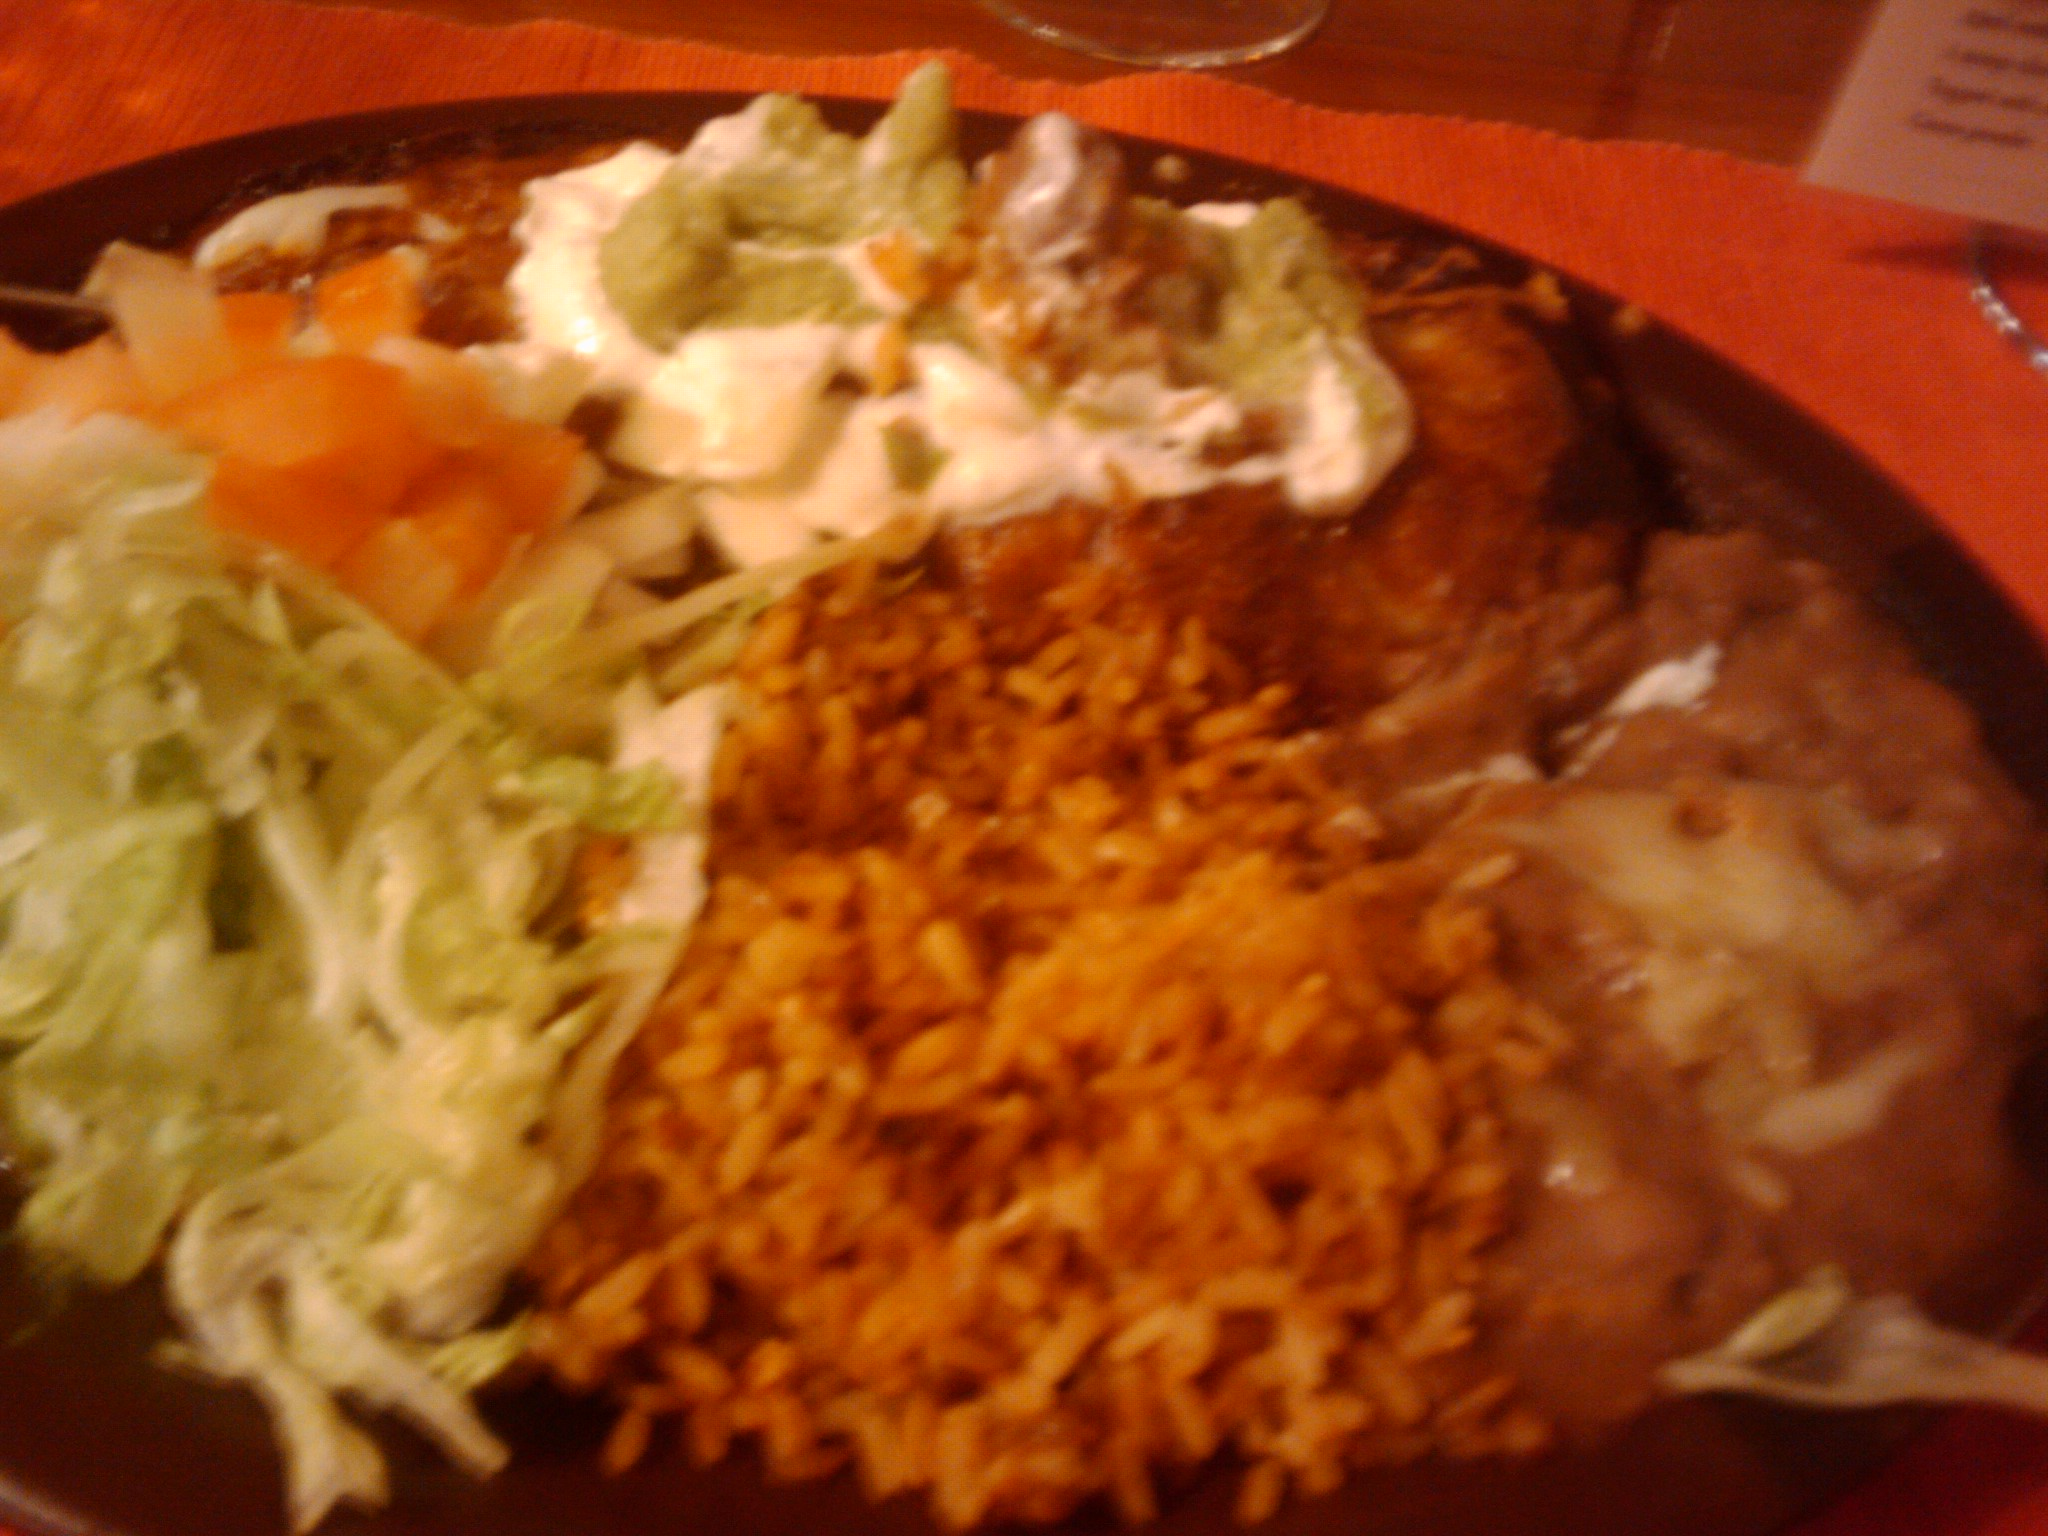 """Brisbane, Australia :: Burrito meal I had tonight at a Mexican restaurant called """"Dos Amigos"""" at Taringa.  It was quite acceptable!"""